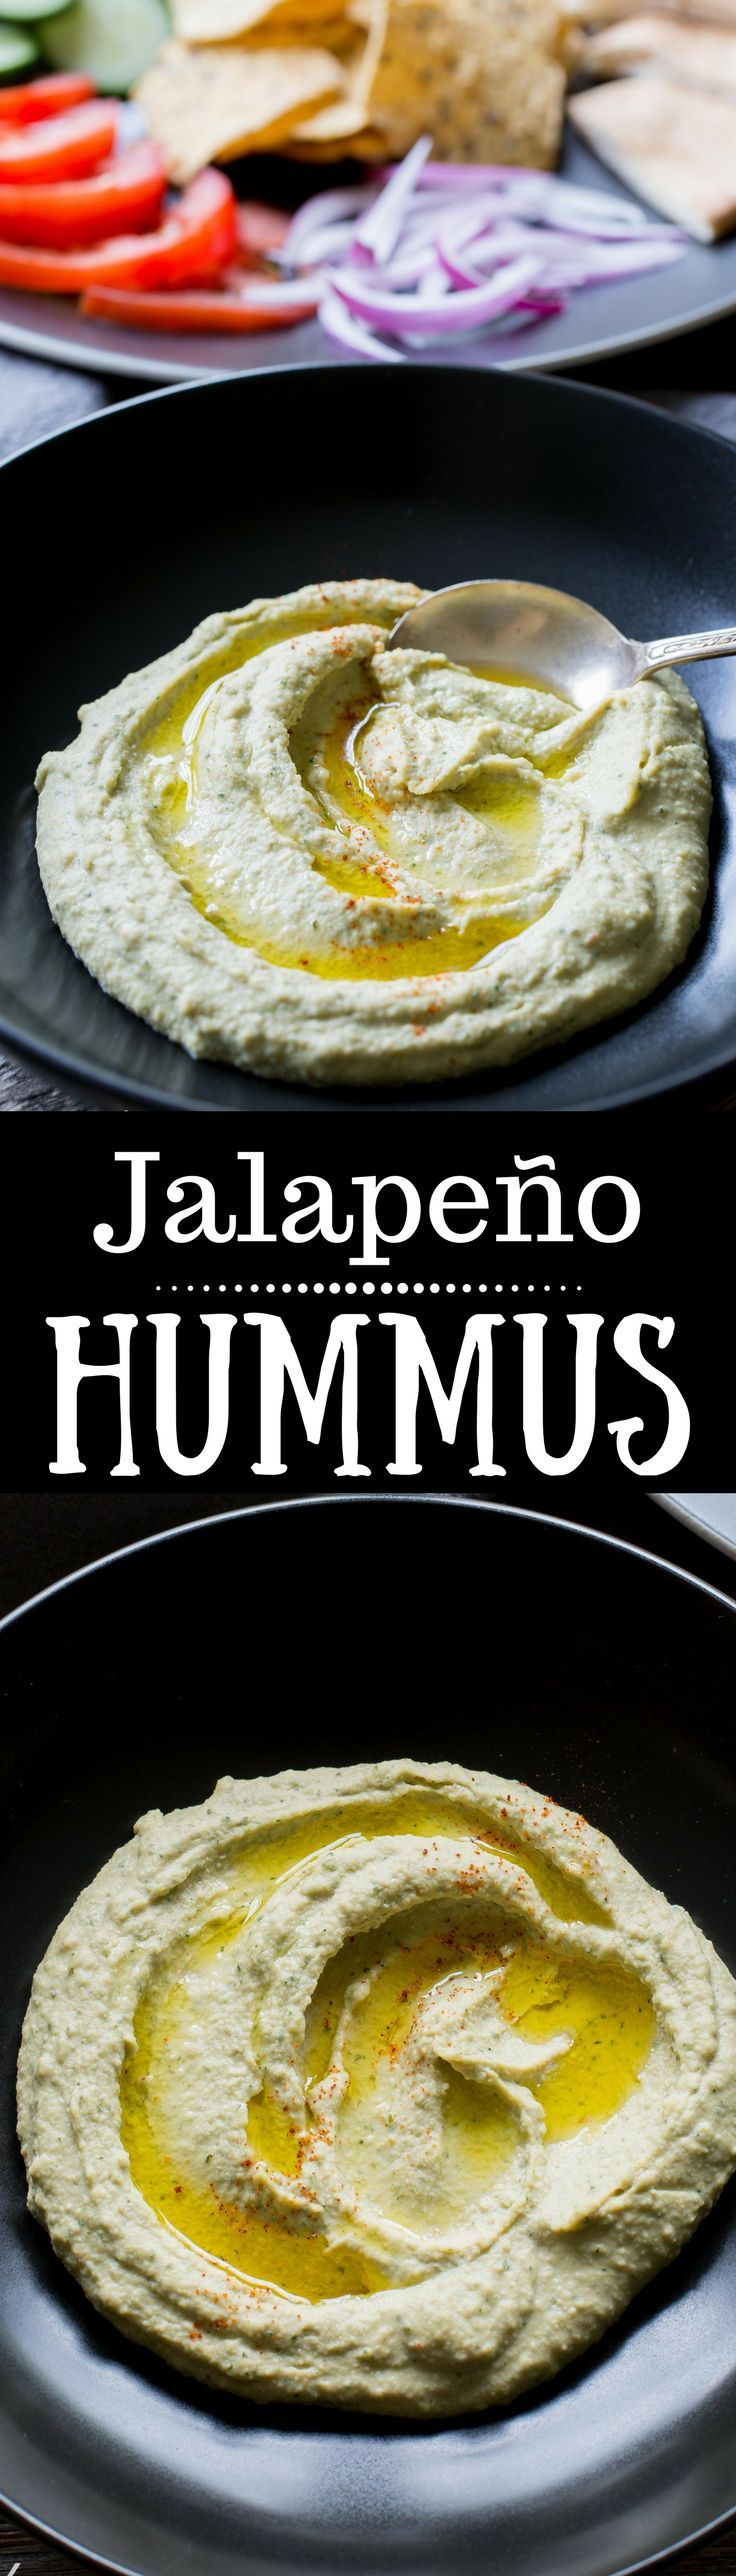 A creamy spicy hummus loaded with flavor from the jalapeño and cilantro. Serve with pita wedges, sliced tomatoes, cucumbers, onions and/or chips |  www.savingdessert.com